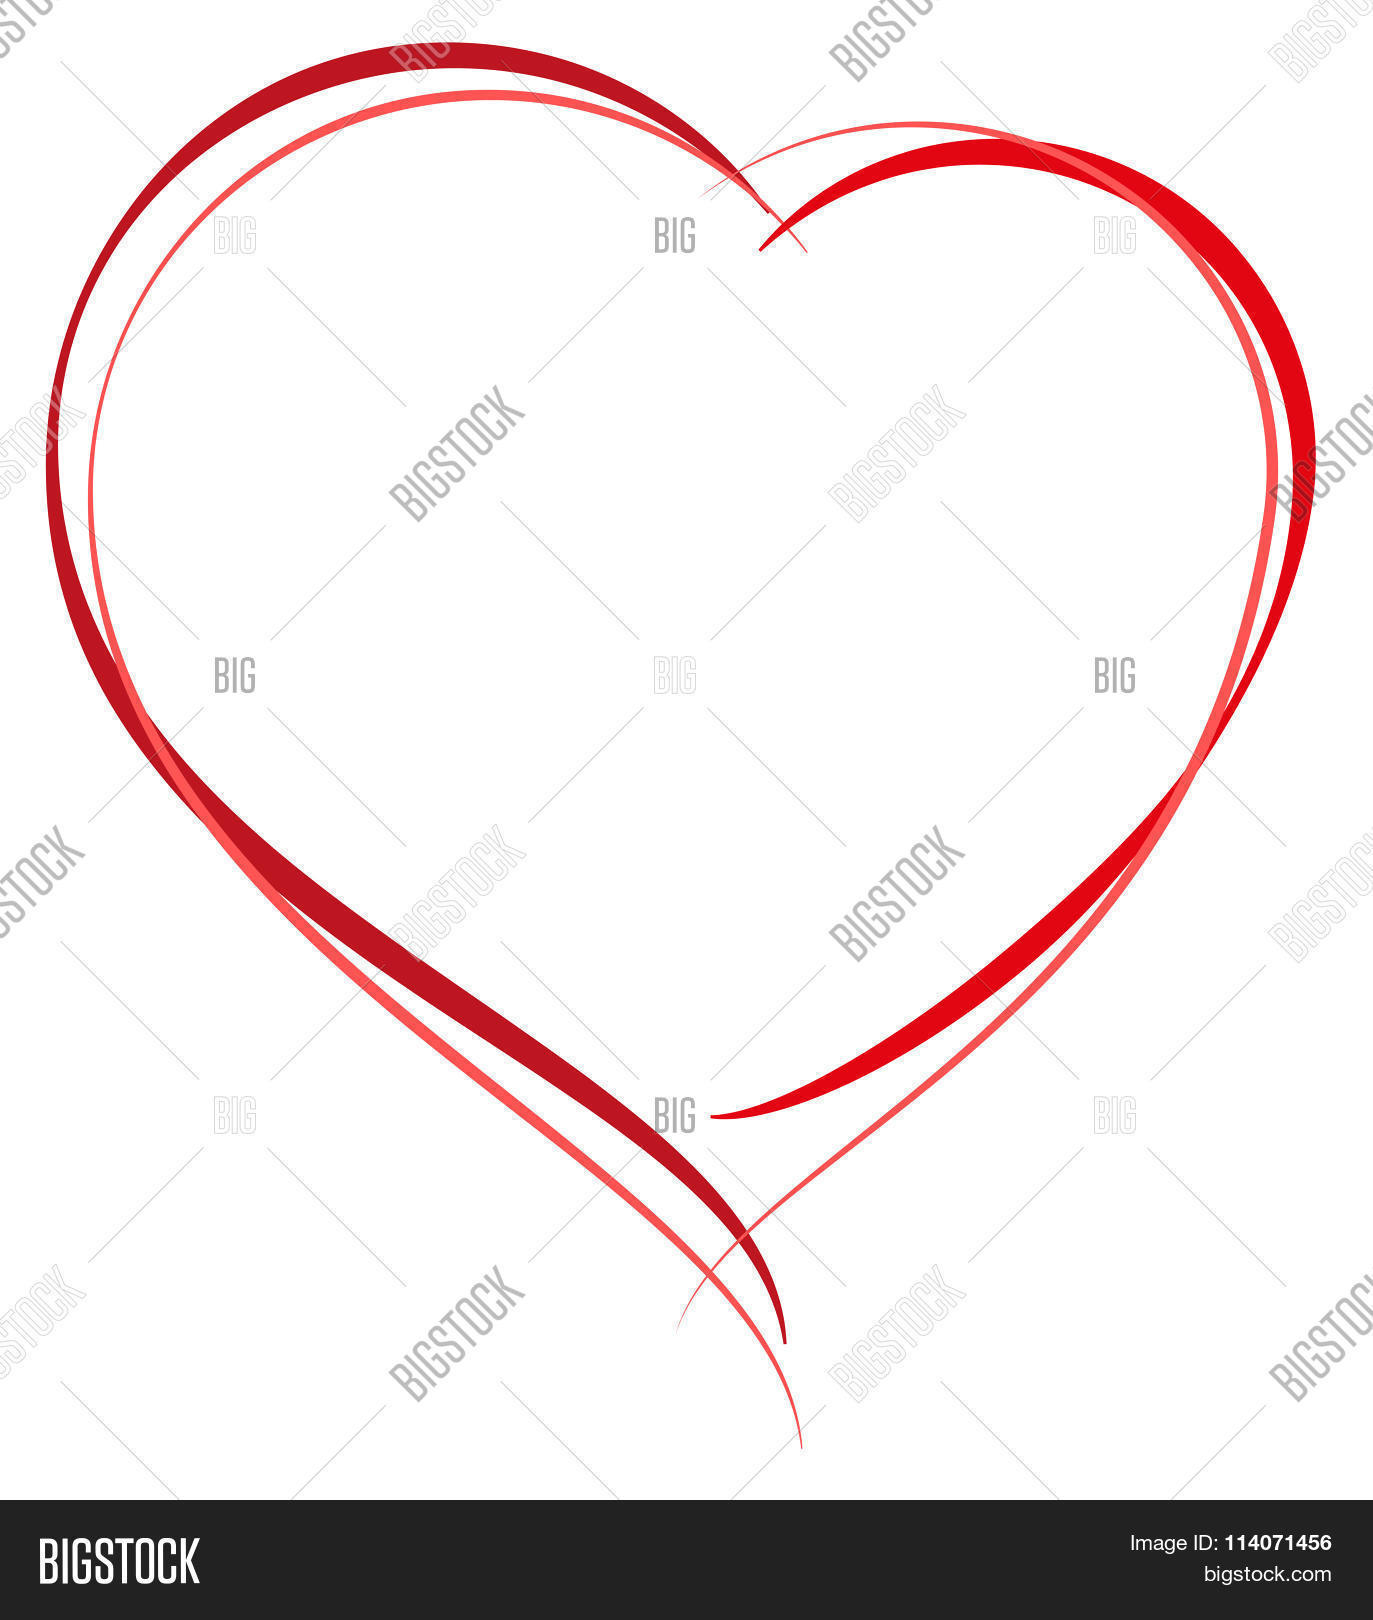 Heart Shape Symbol Vector Photo Free Trial Bigstock